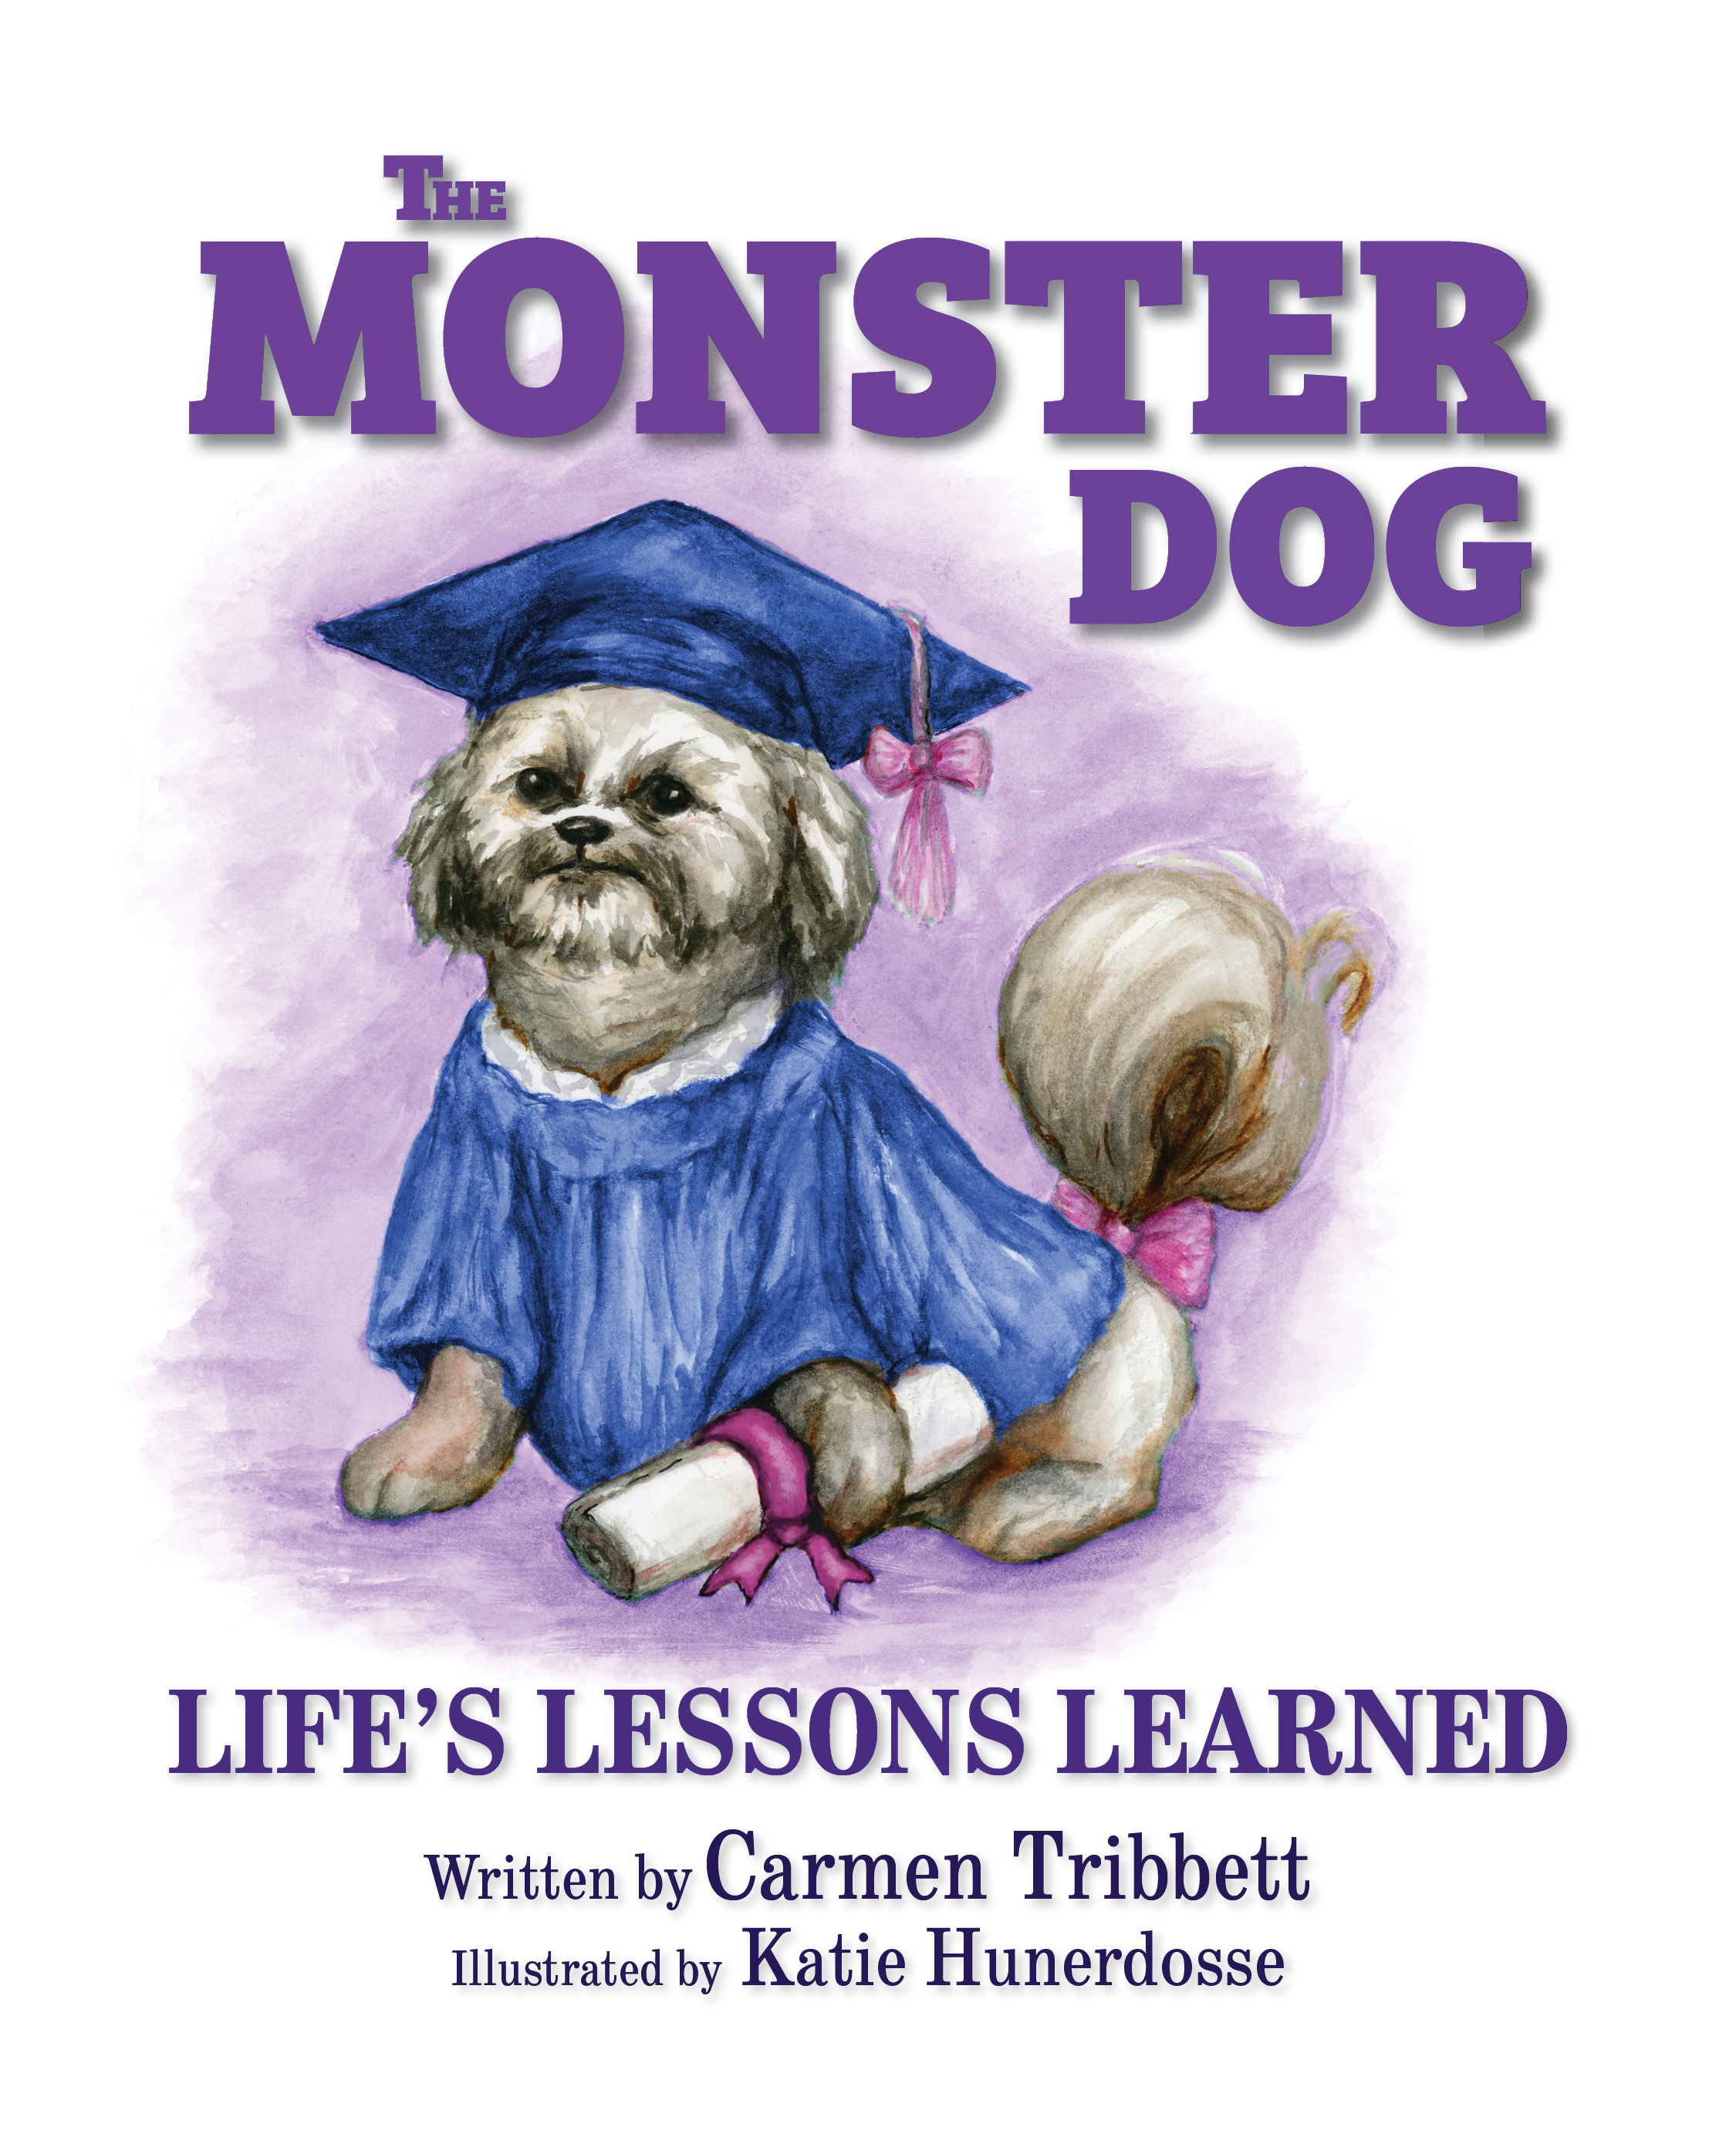 The Monster Dog - Life's Lessons Learned